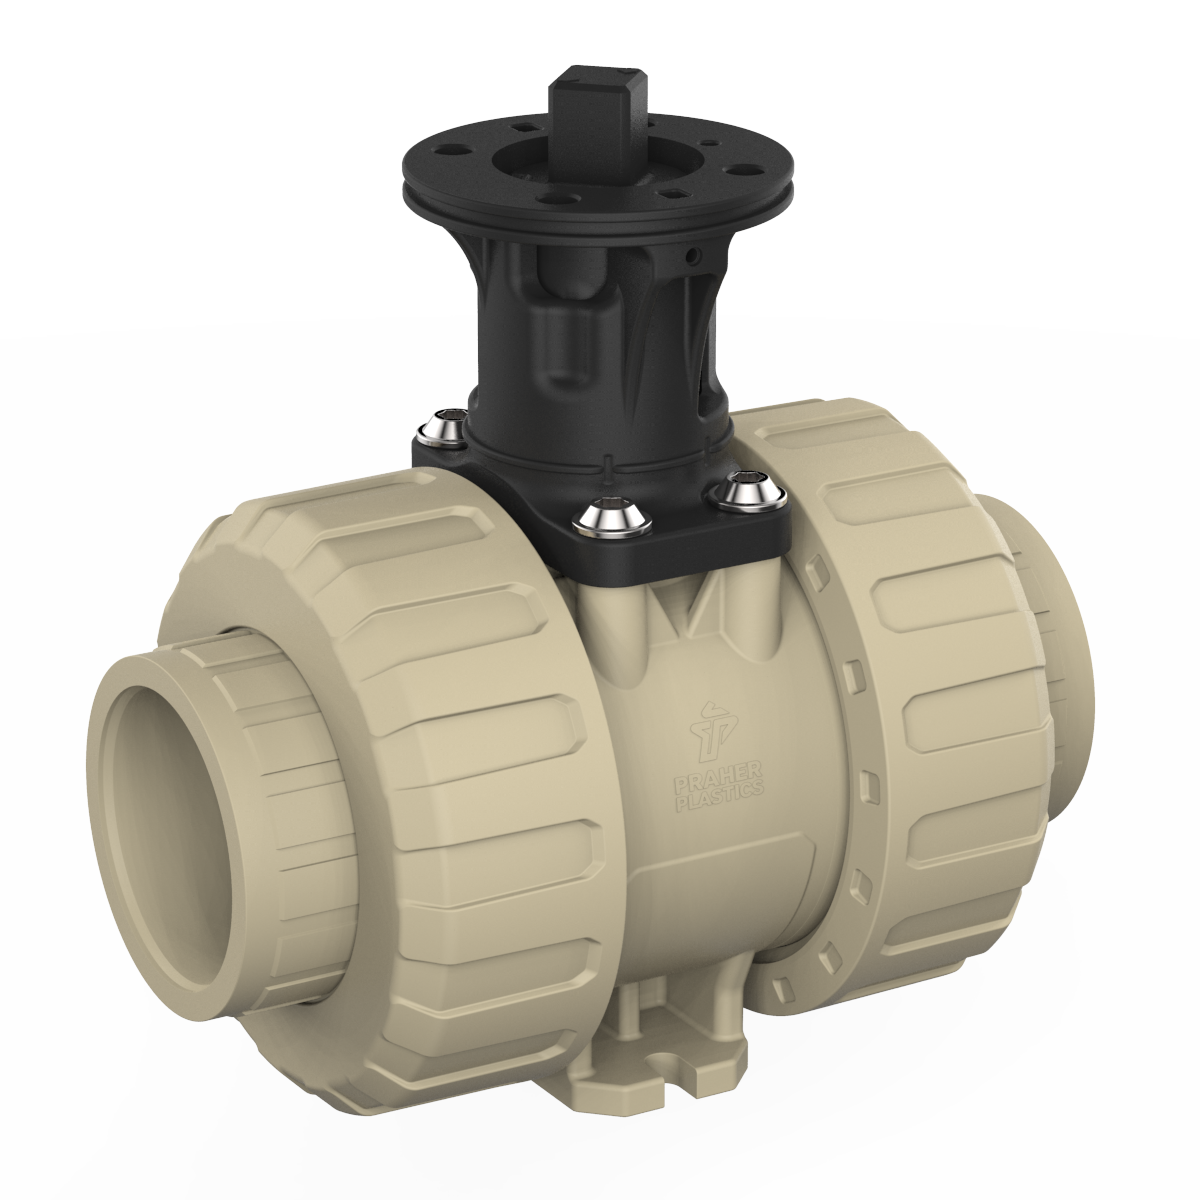 2-way ball valve M1 PP adapter set, beige and black